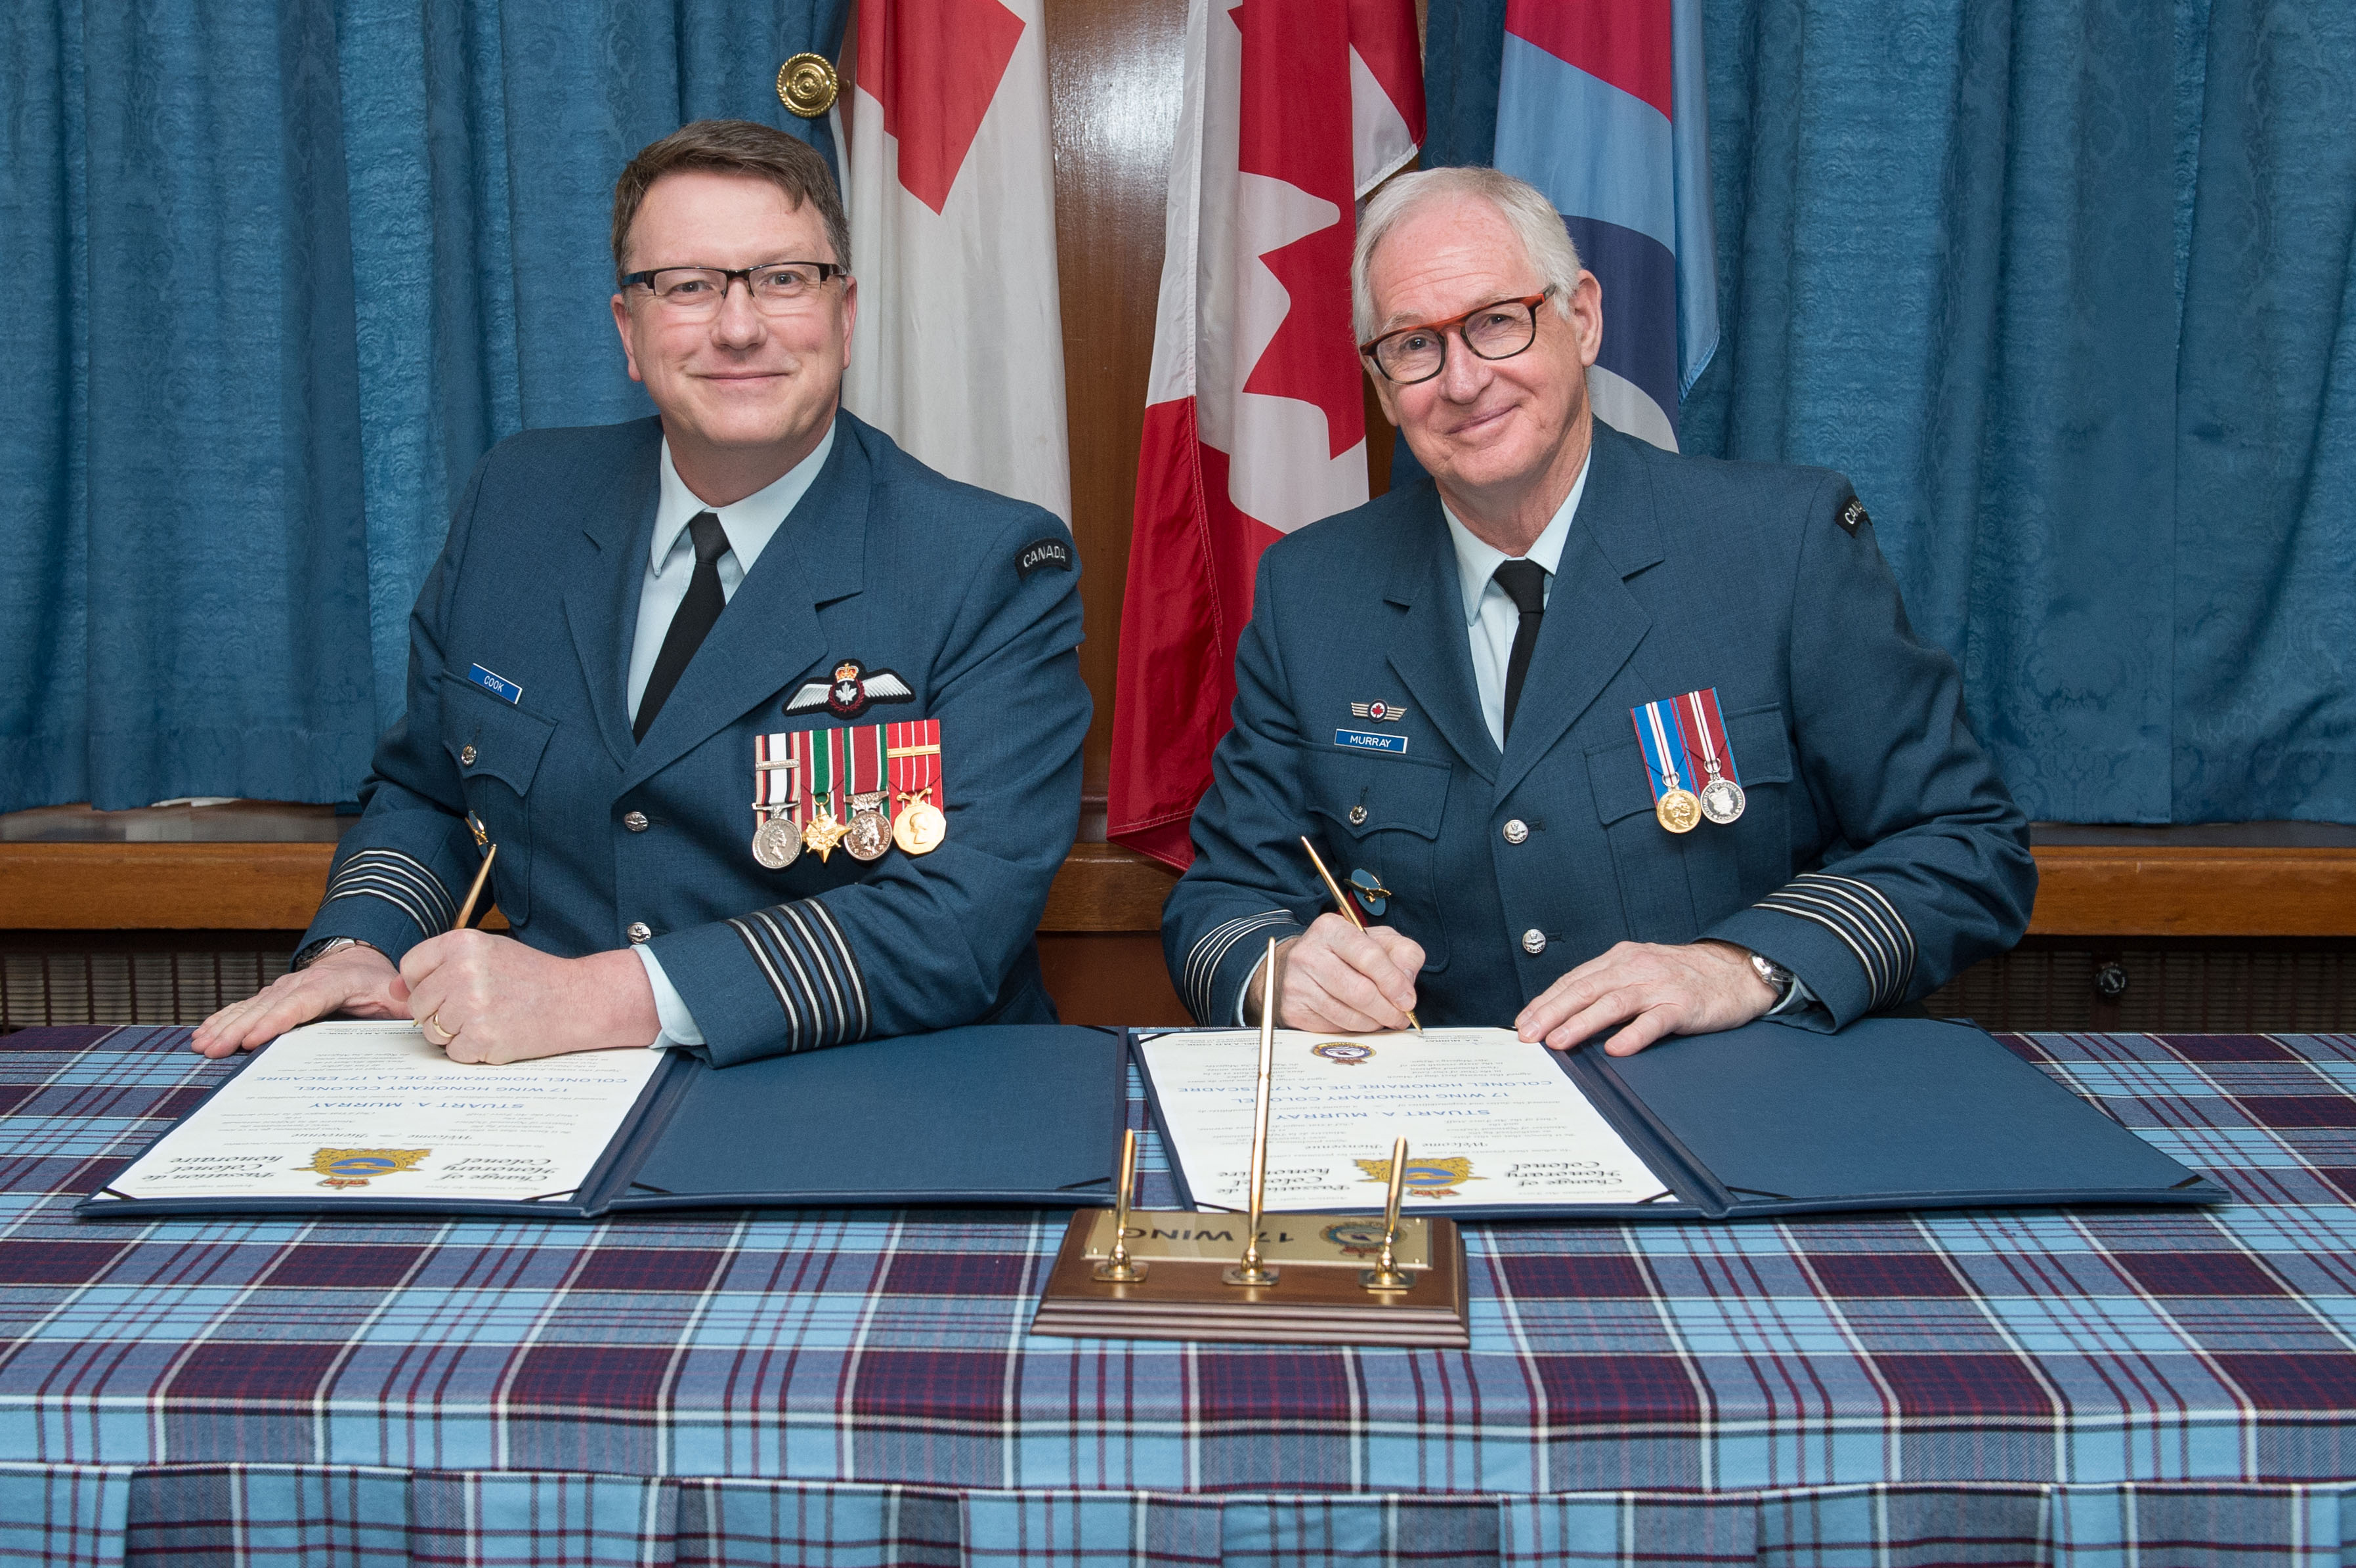 With flags in the background, two men wearing blue uniforms with medals sit at a tartan-covered table signing documents.